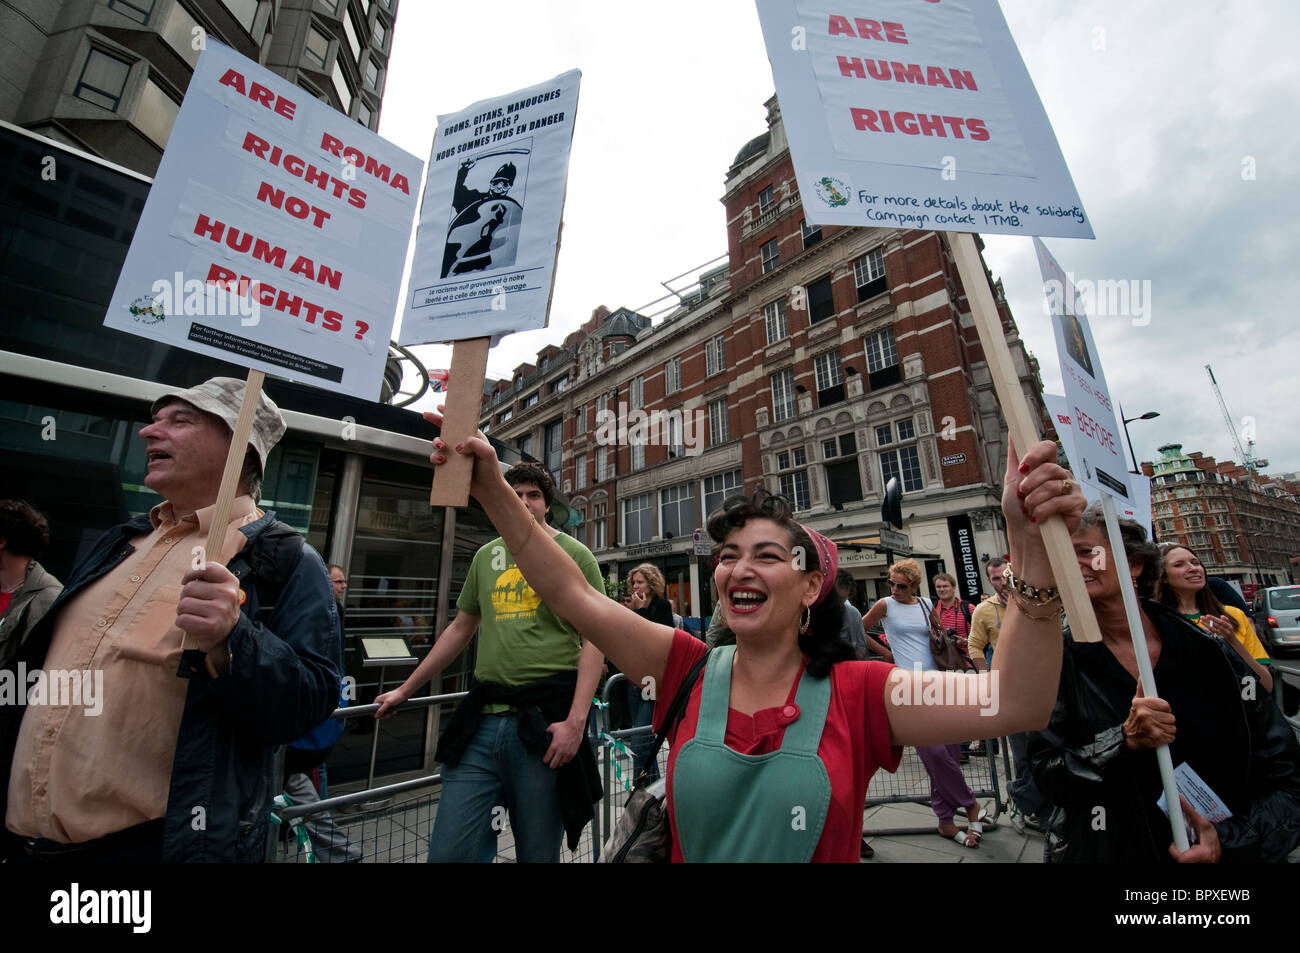 Roma Gypsies and Irish Travelers protest in London about the French persecution and closing down of Gypsy camps - Stock Image